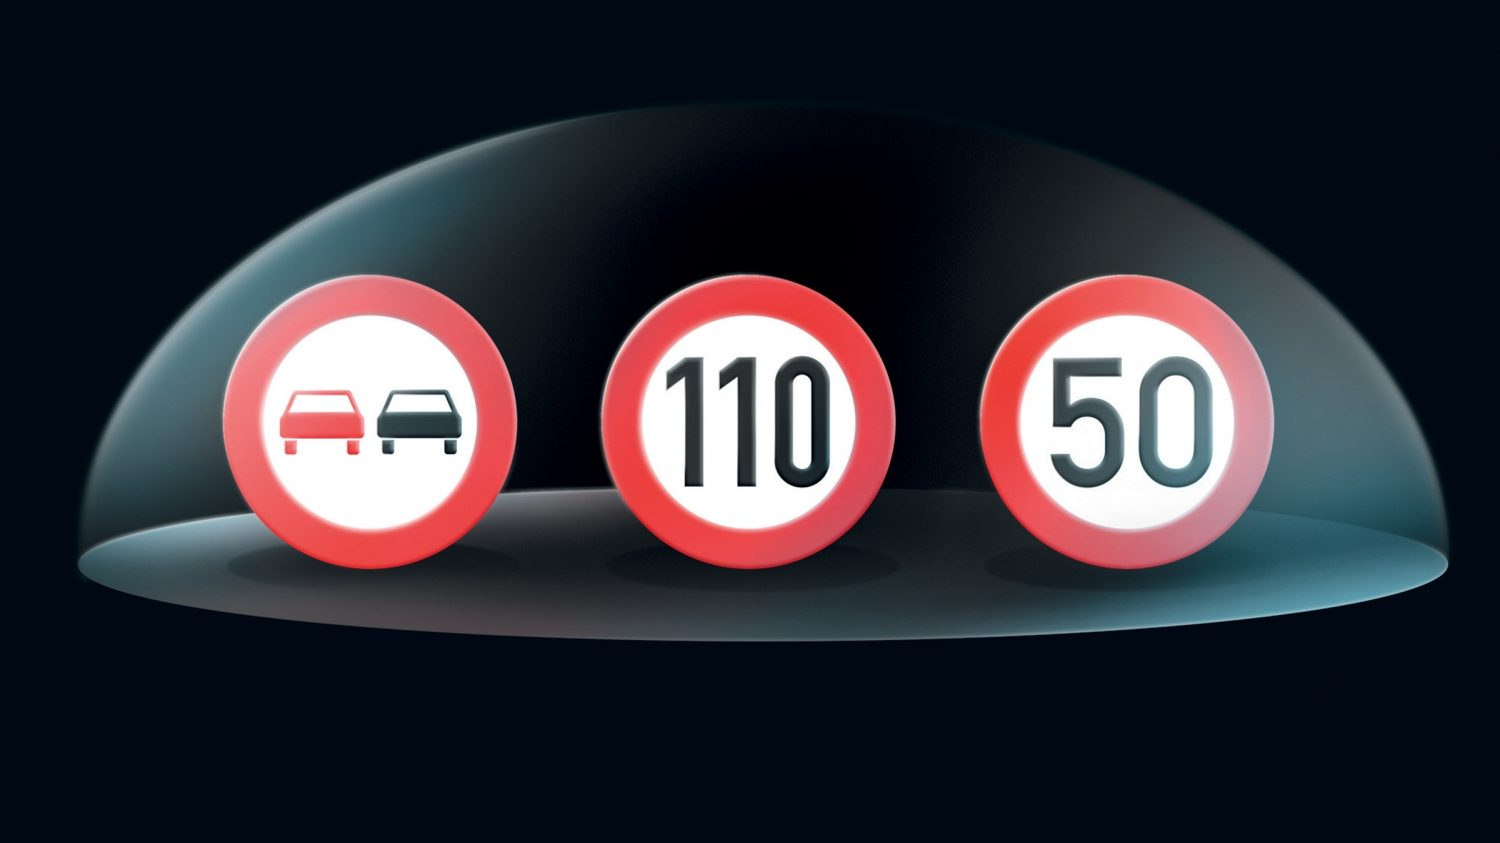 Nissan Qashqai N-Vision with Traffic Sign Recognition